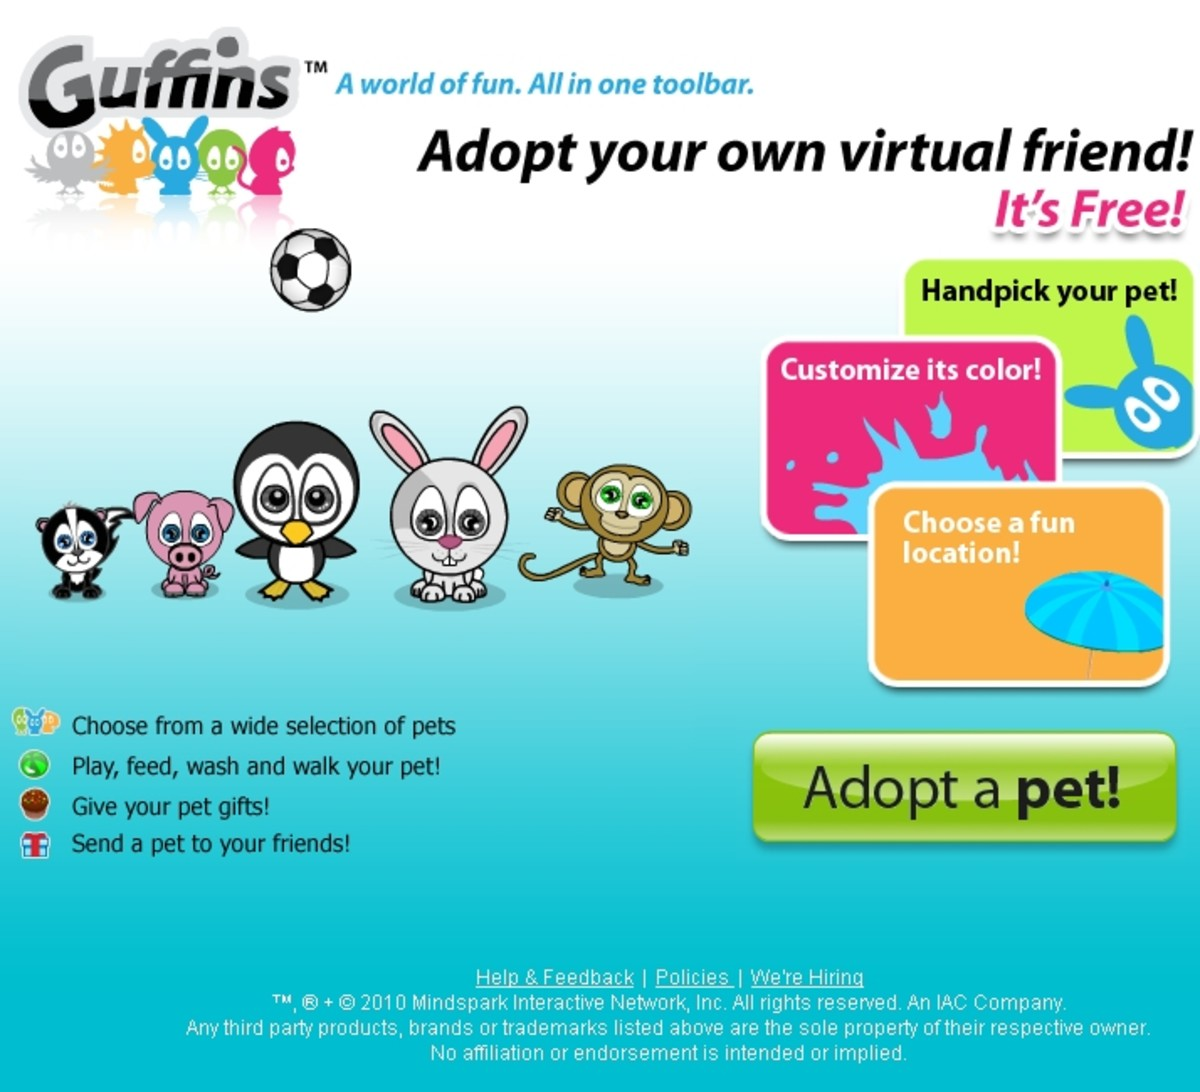 You can visit Guffins.com and click on Adopt a Pet